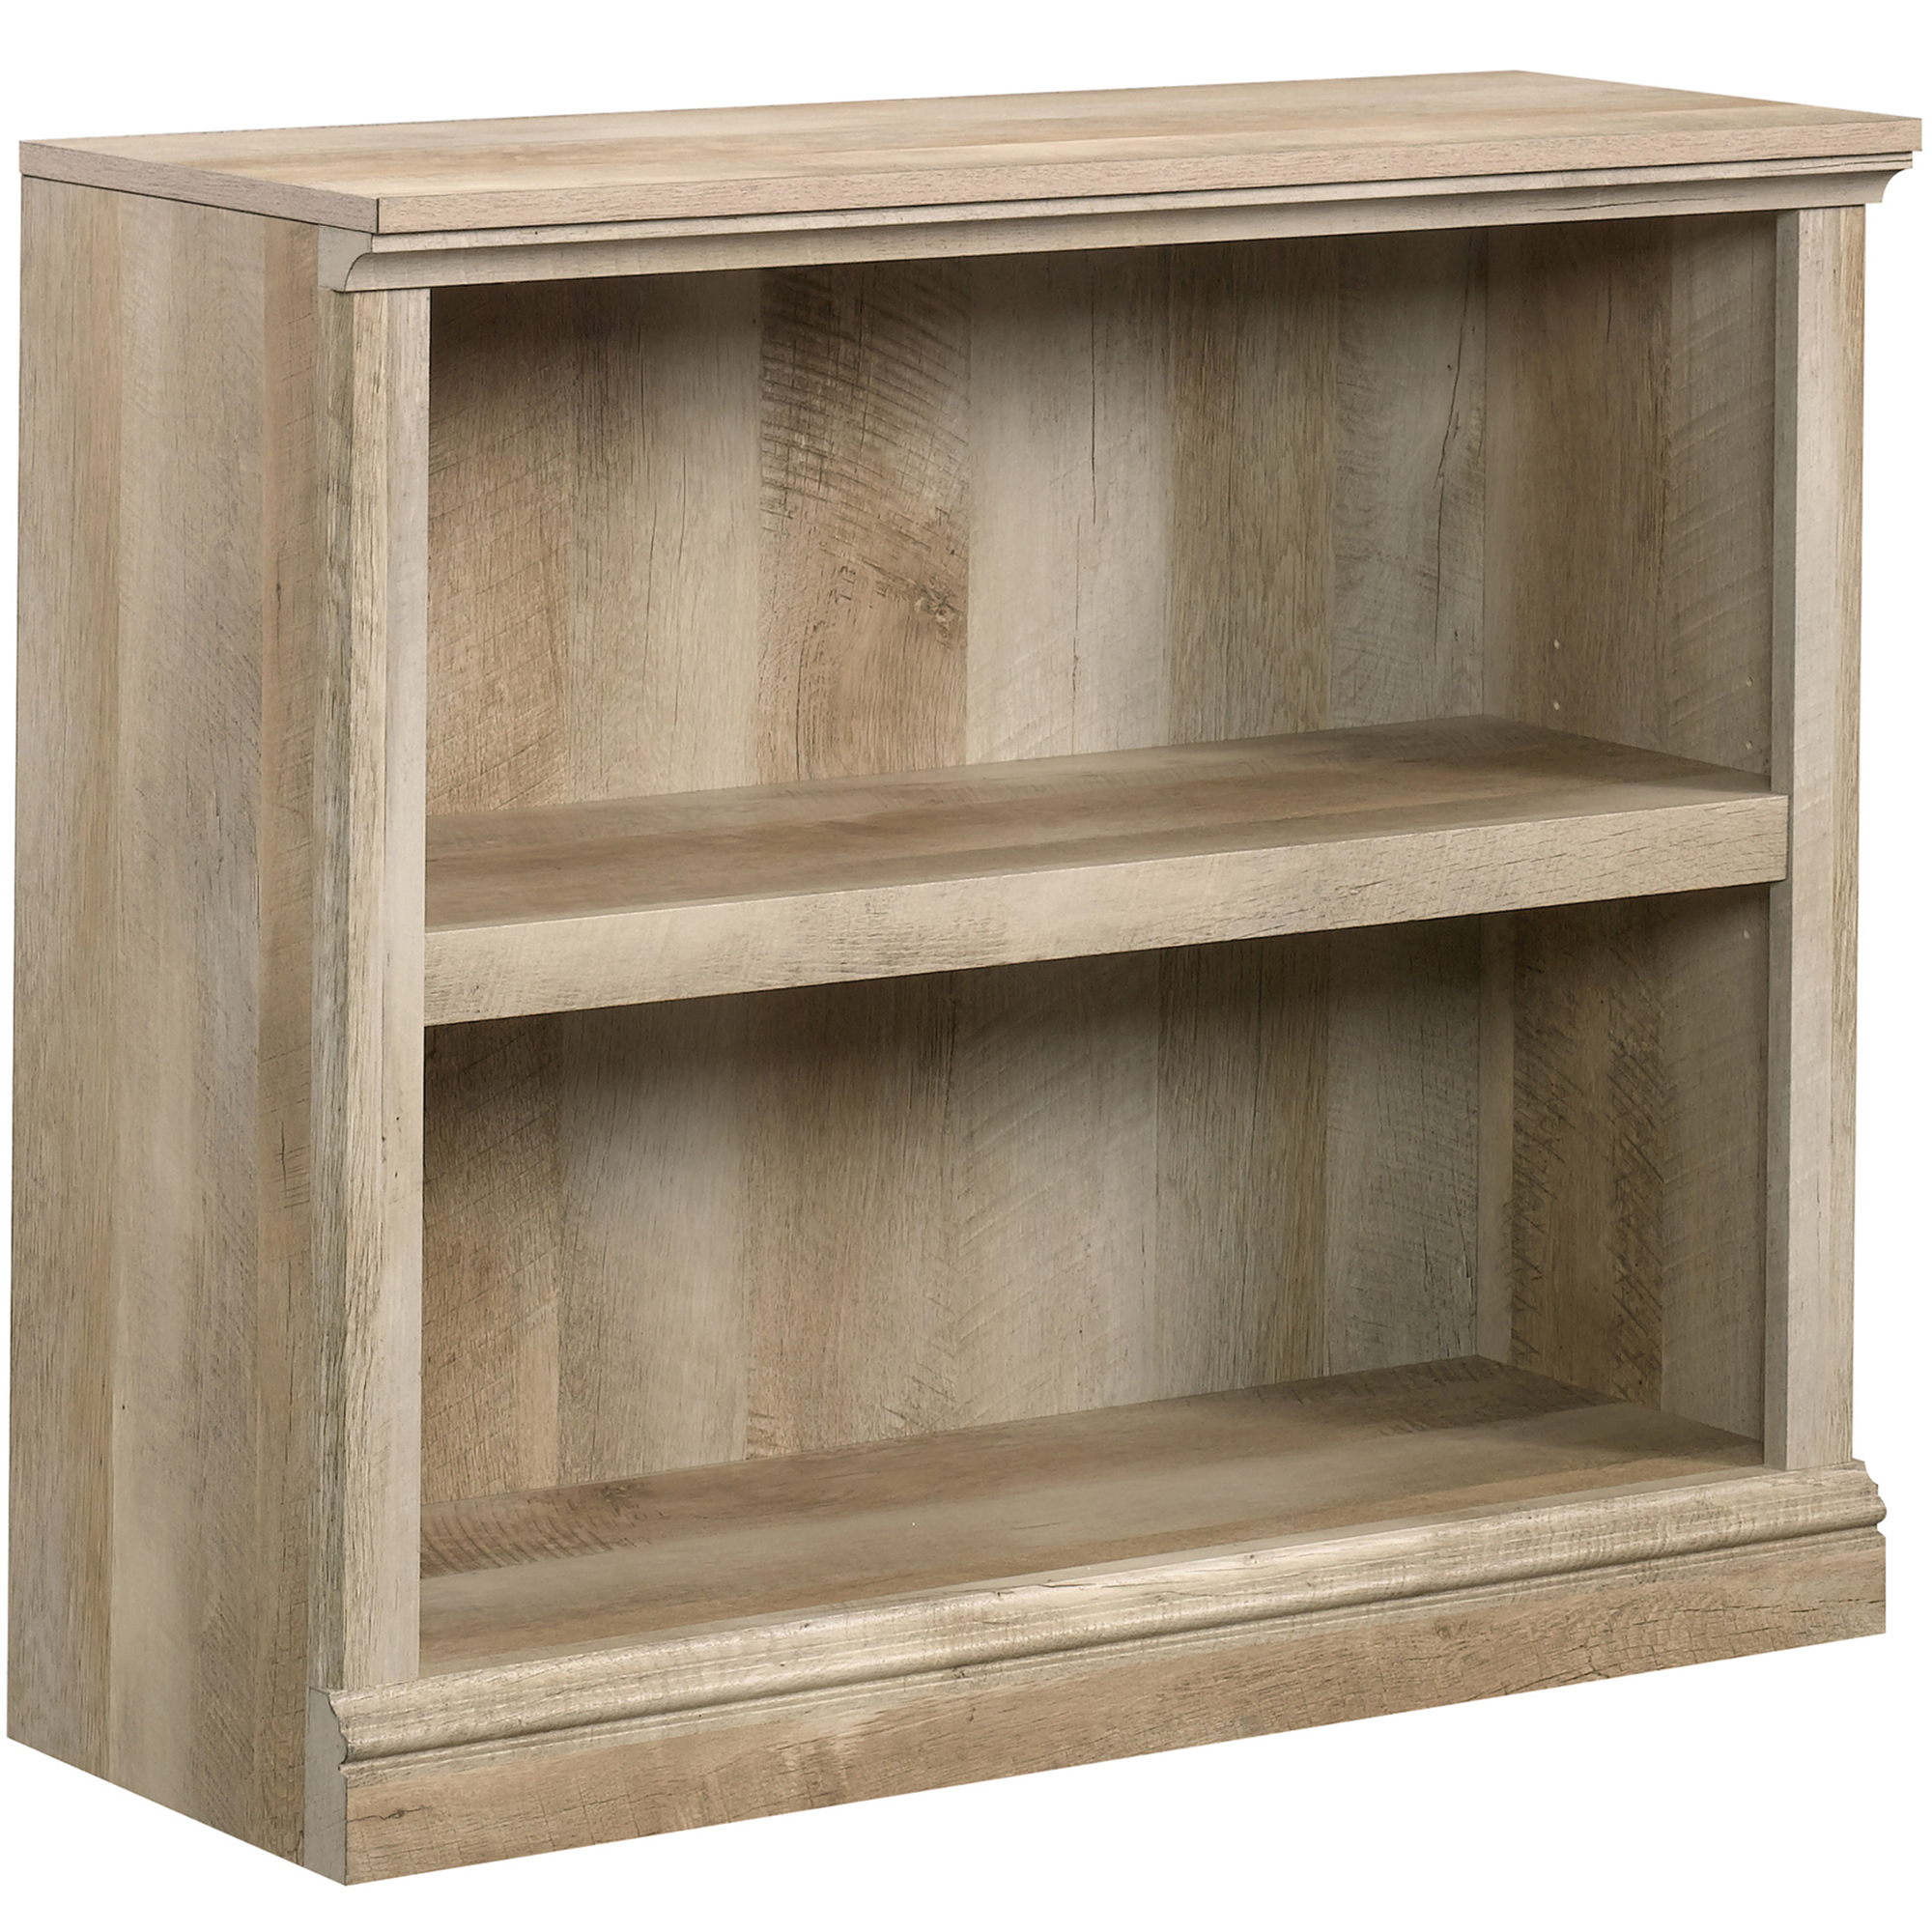 Sku #Ubil1037 Oak Lintel 2 Shelf Bookcase Is Also Sometimes